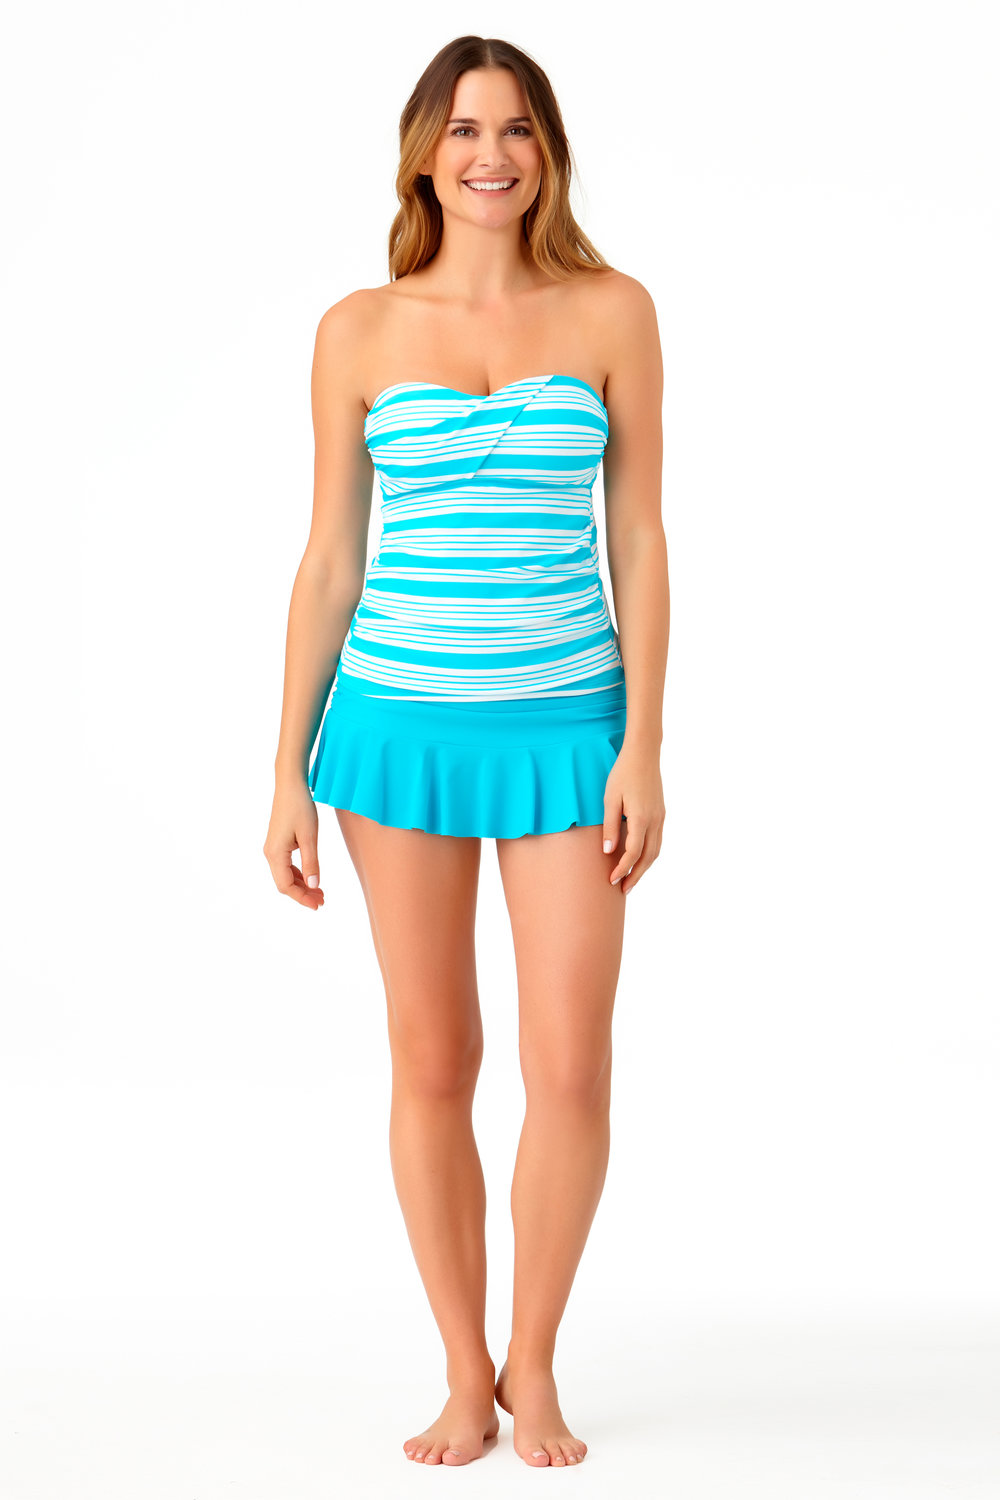 STYLE # CTL27401T / CTL27502B - Melbourne Stripe Twist Bandini TopBUY NOW ON WALMARTSolid Ruffle Skirted BottomBUY NOW ON WALMART